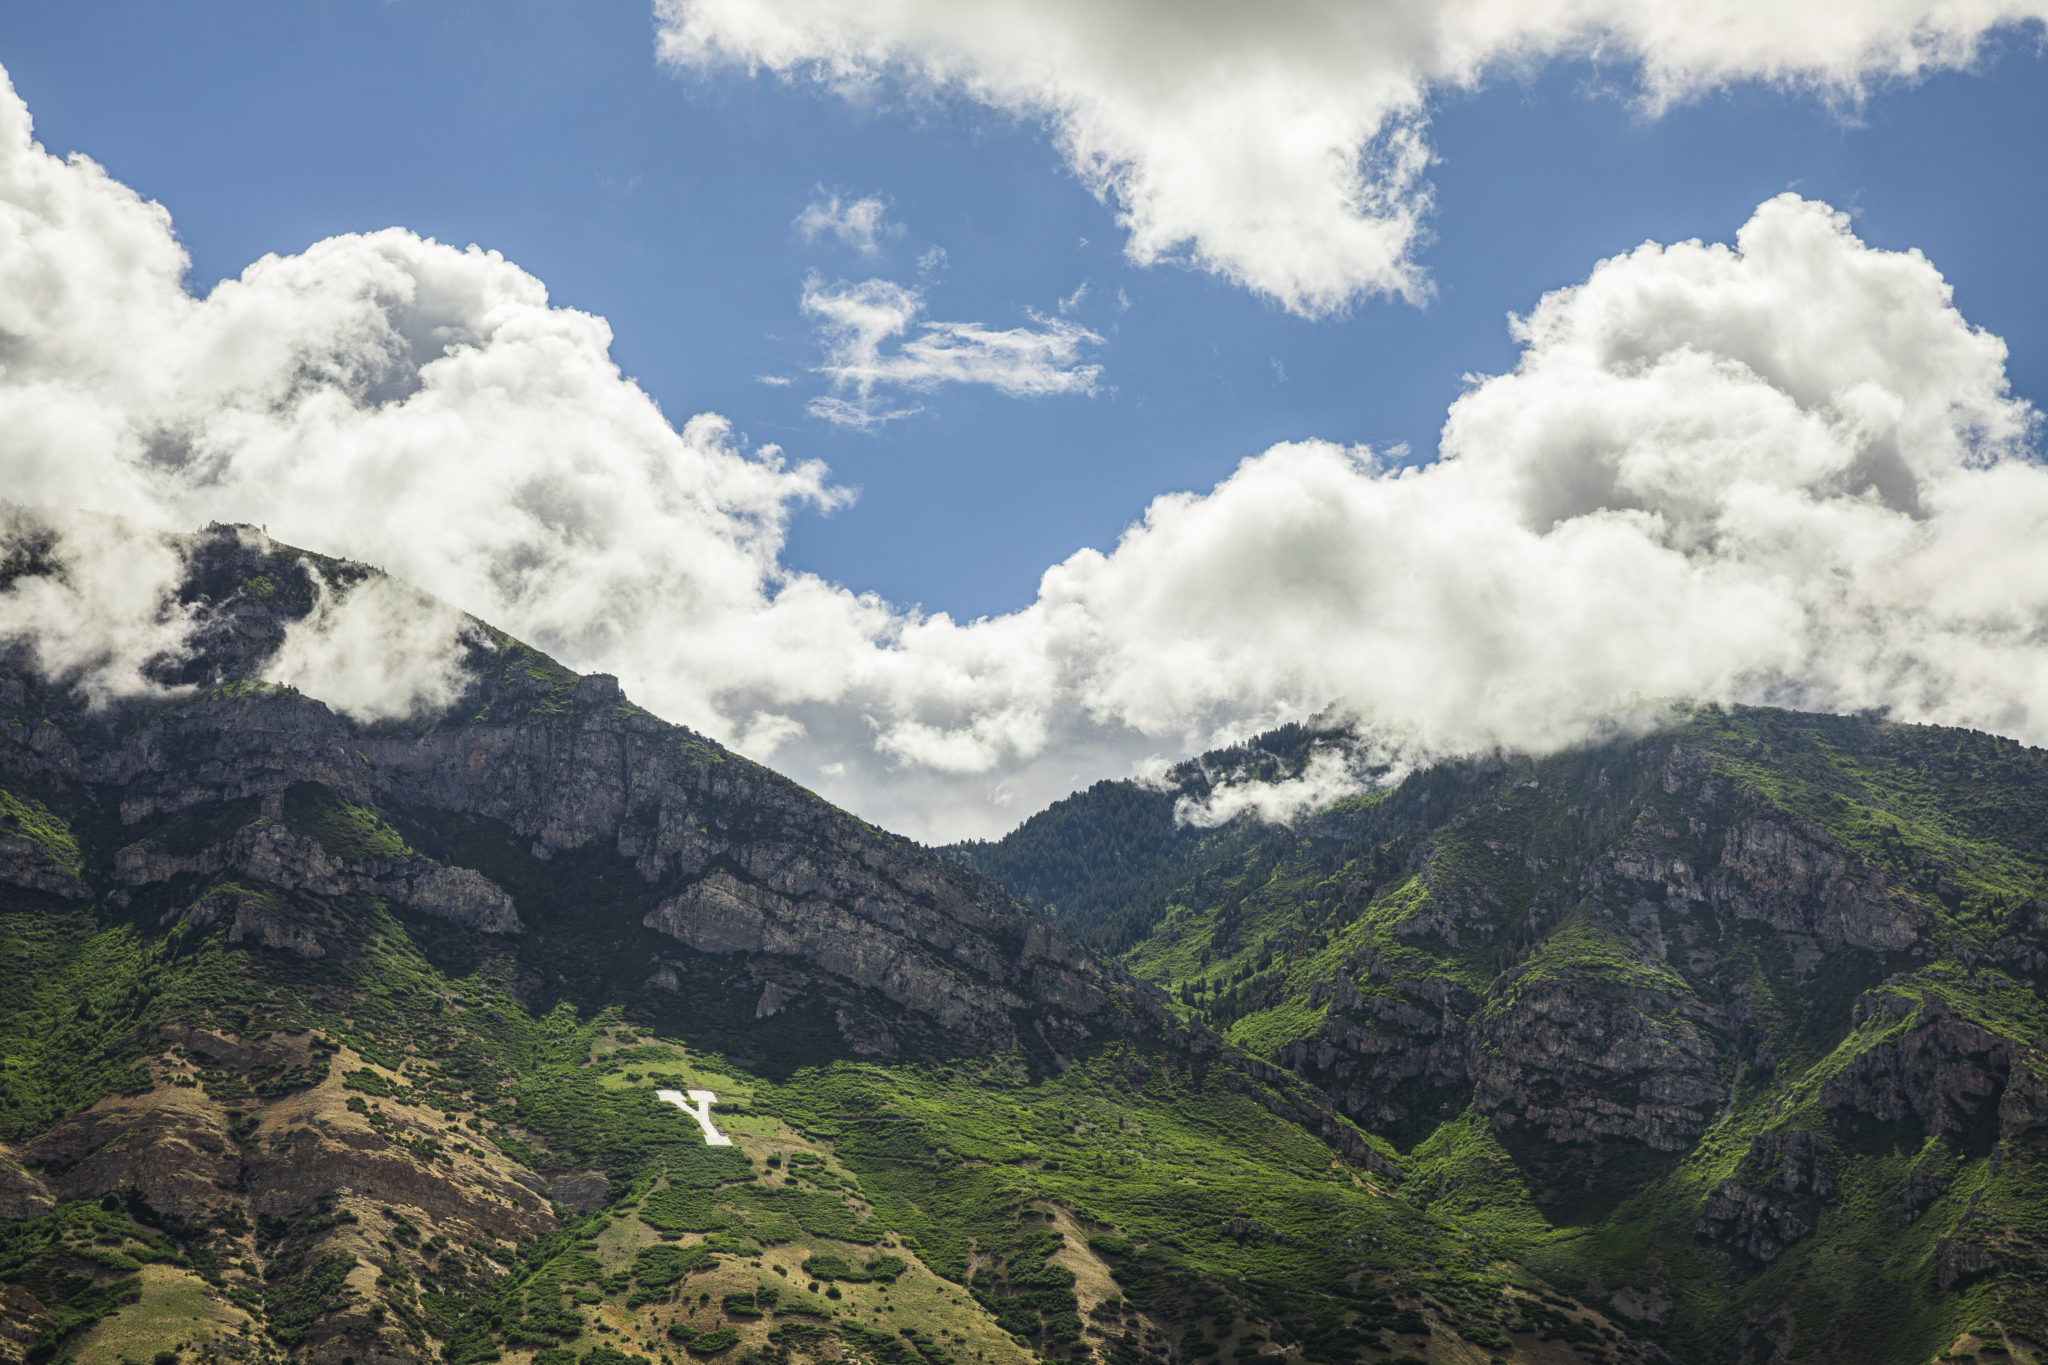 Provo City partners with US Forest Service to preserve foothills and canyons